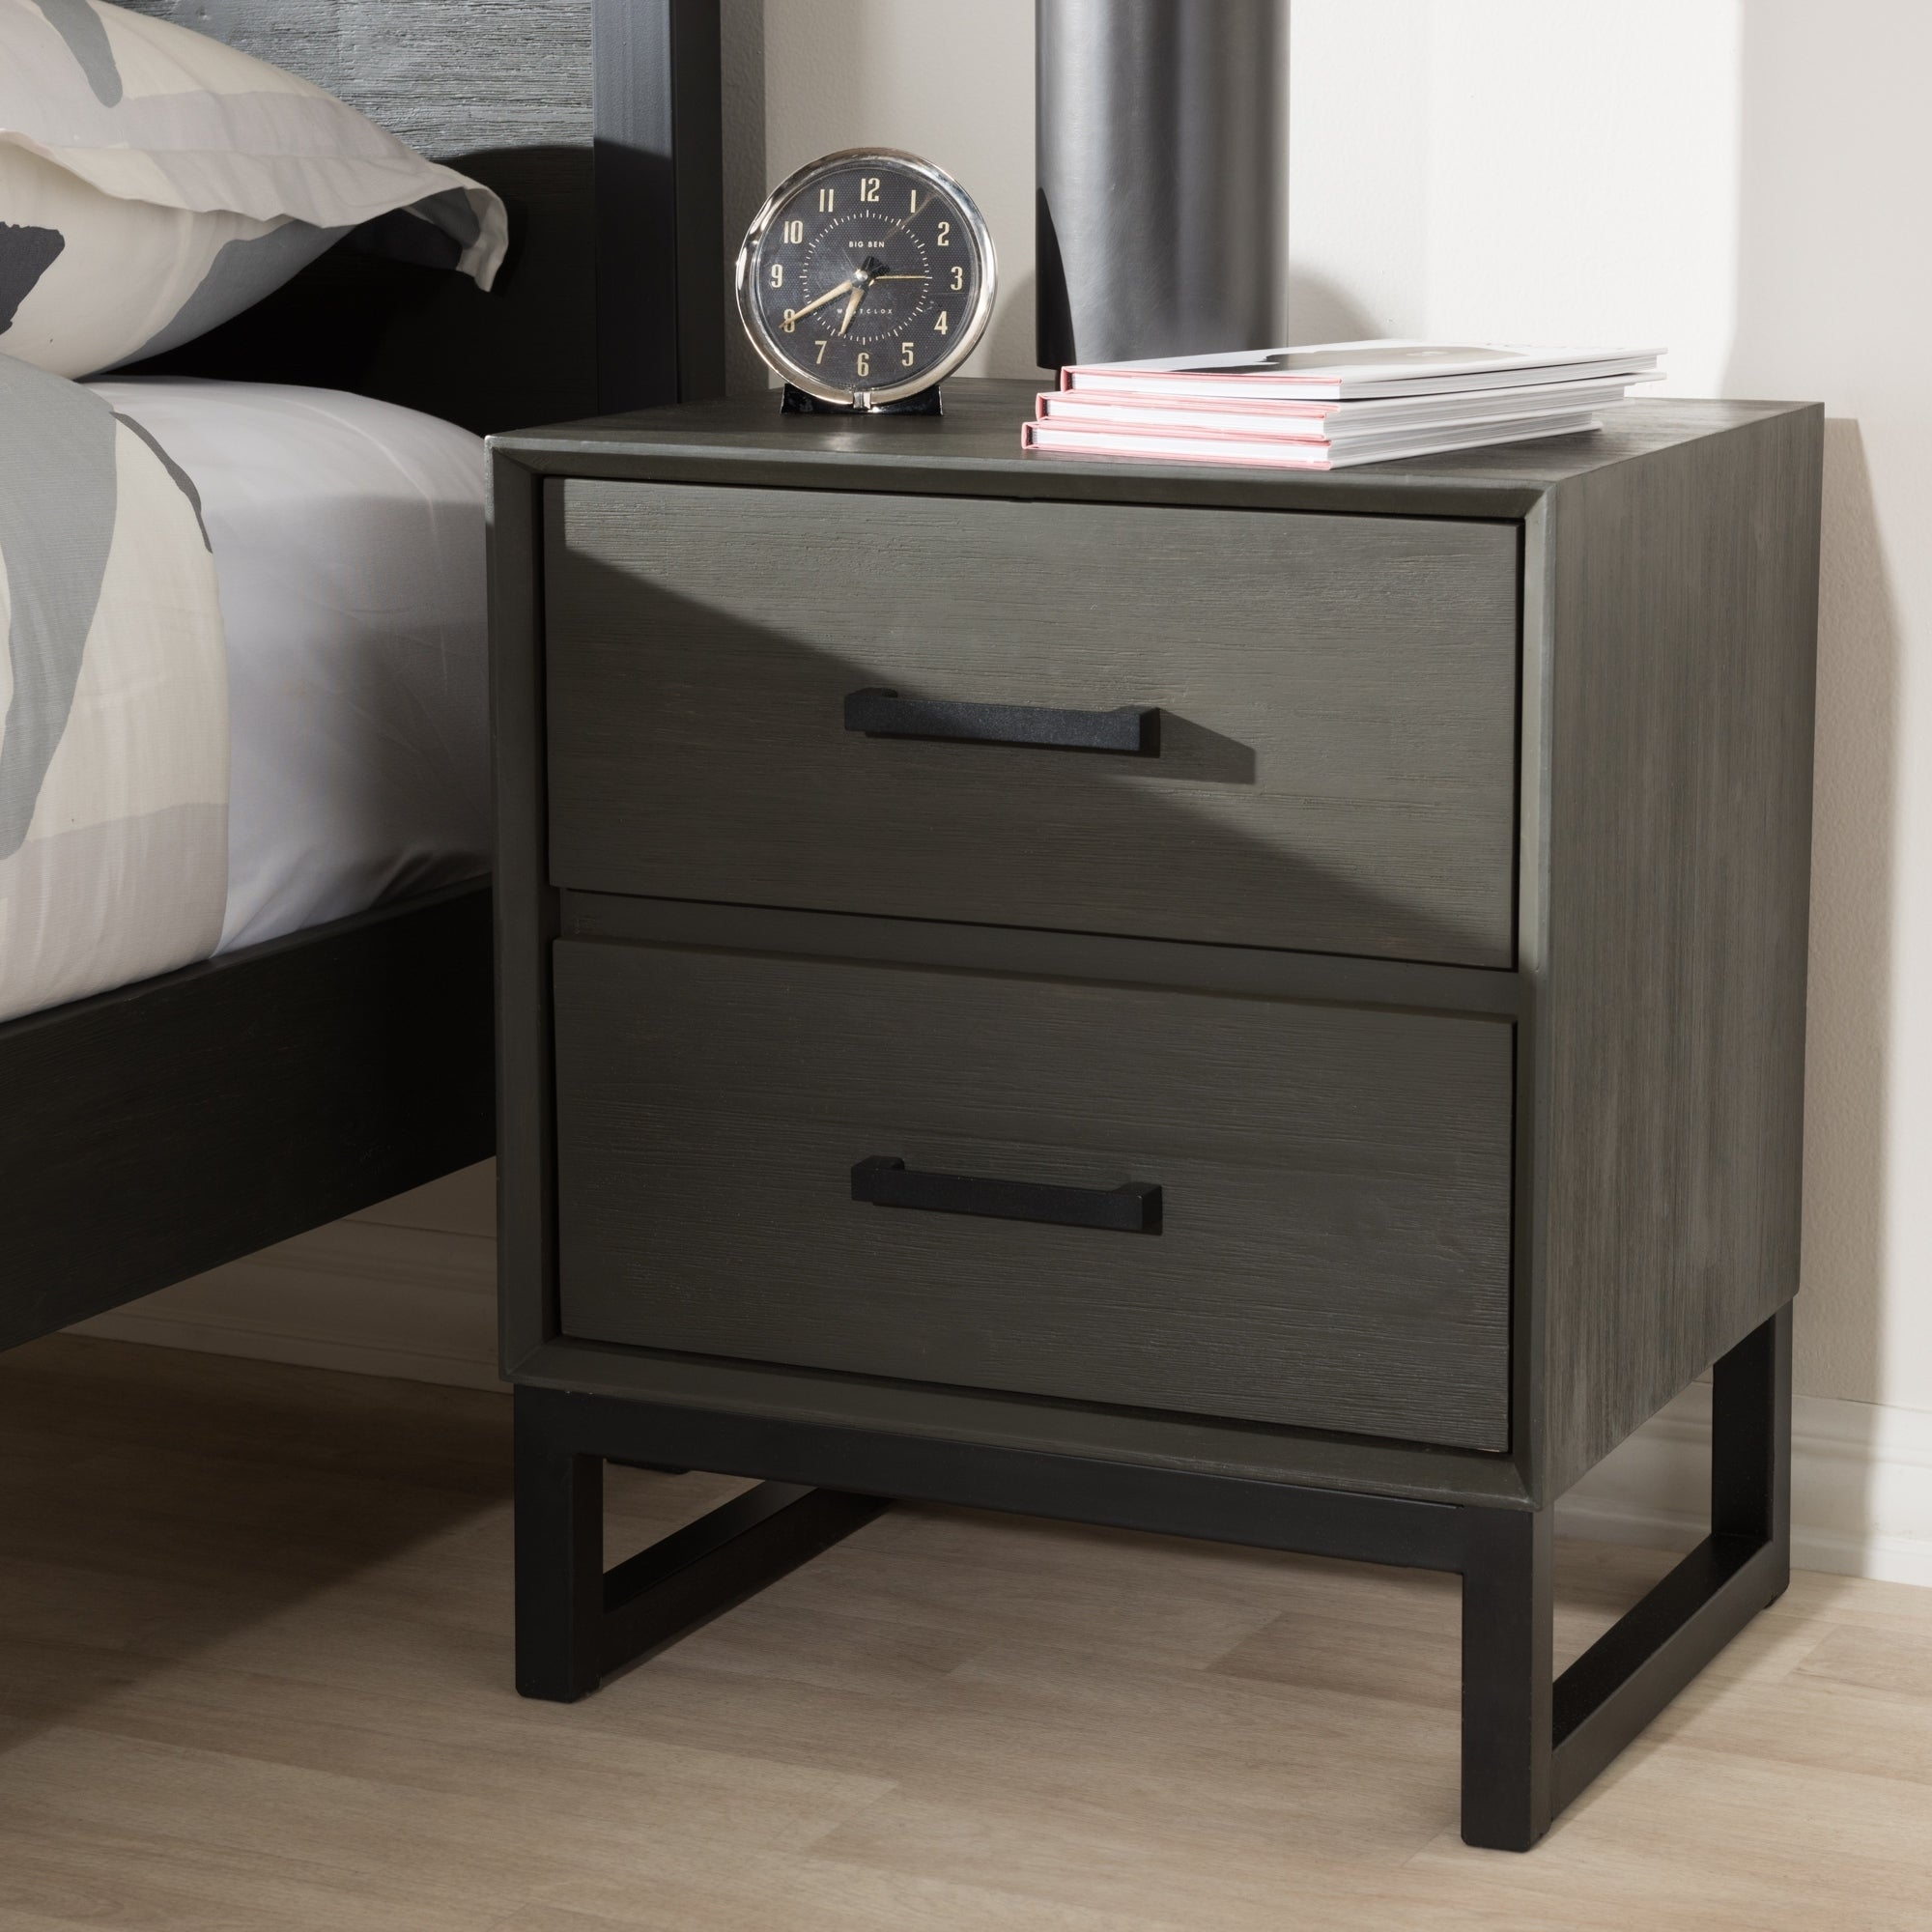 Rustic Grey Wood And Black Metal 2 Drawer Nightstand By Baxton Studio Overstock 19503090